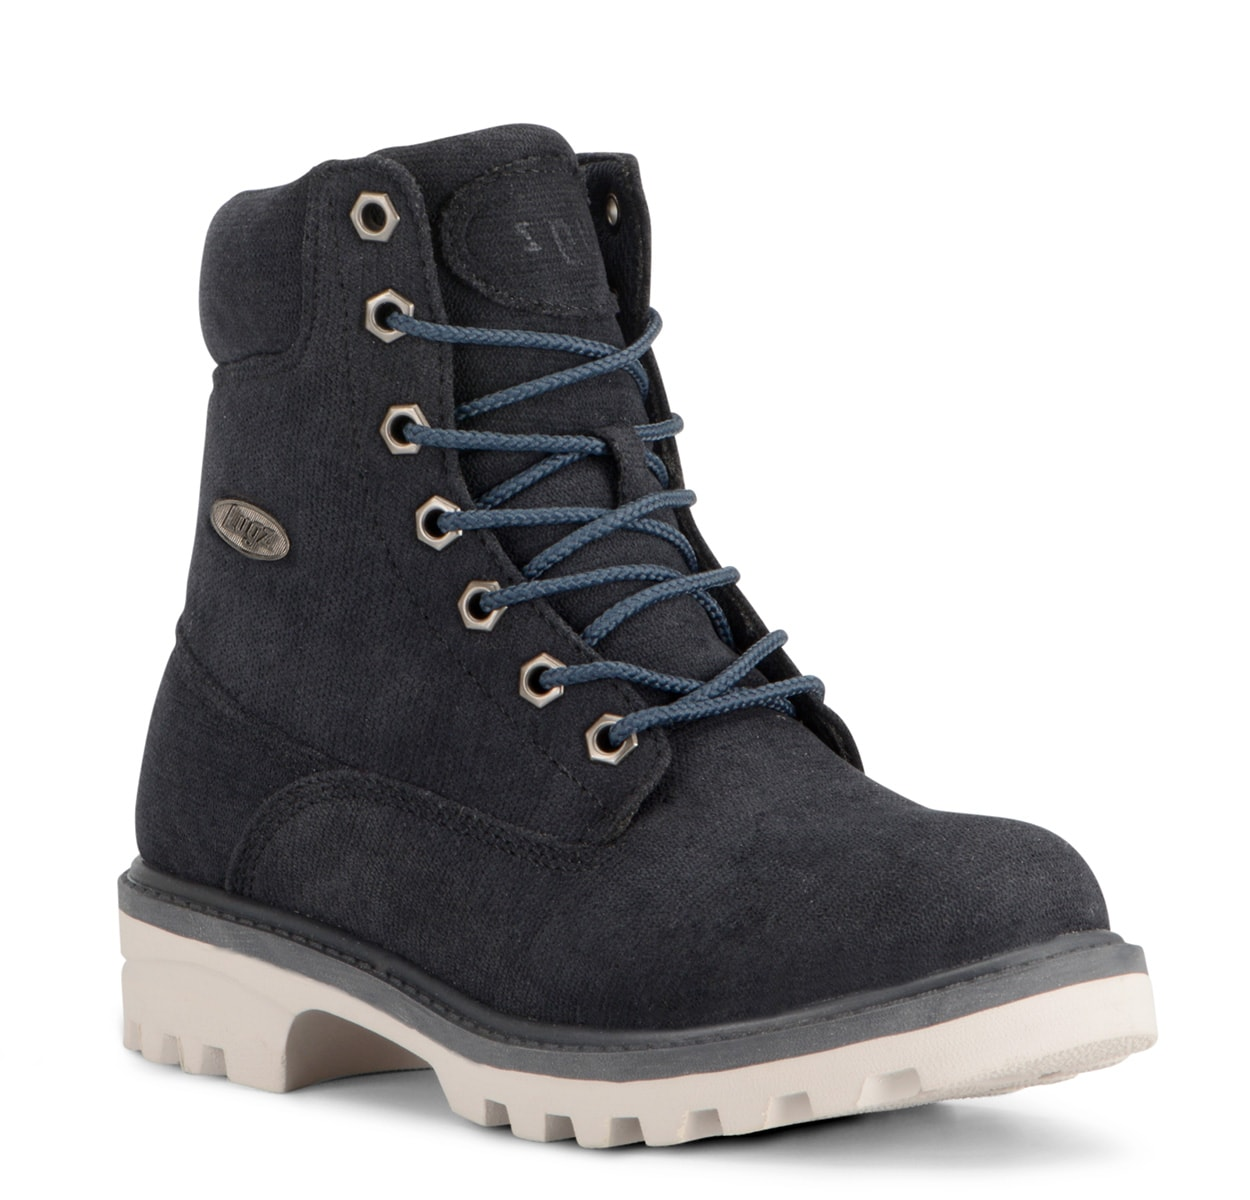 Women's Empire Hi WVT 6-Inch Boot (Choose Your Color: NAVY/DOVE, Choose Your Size: 8.0)